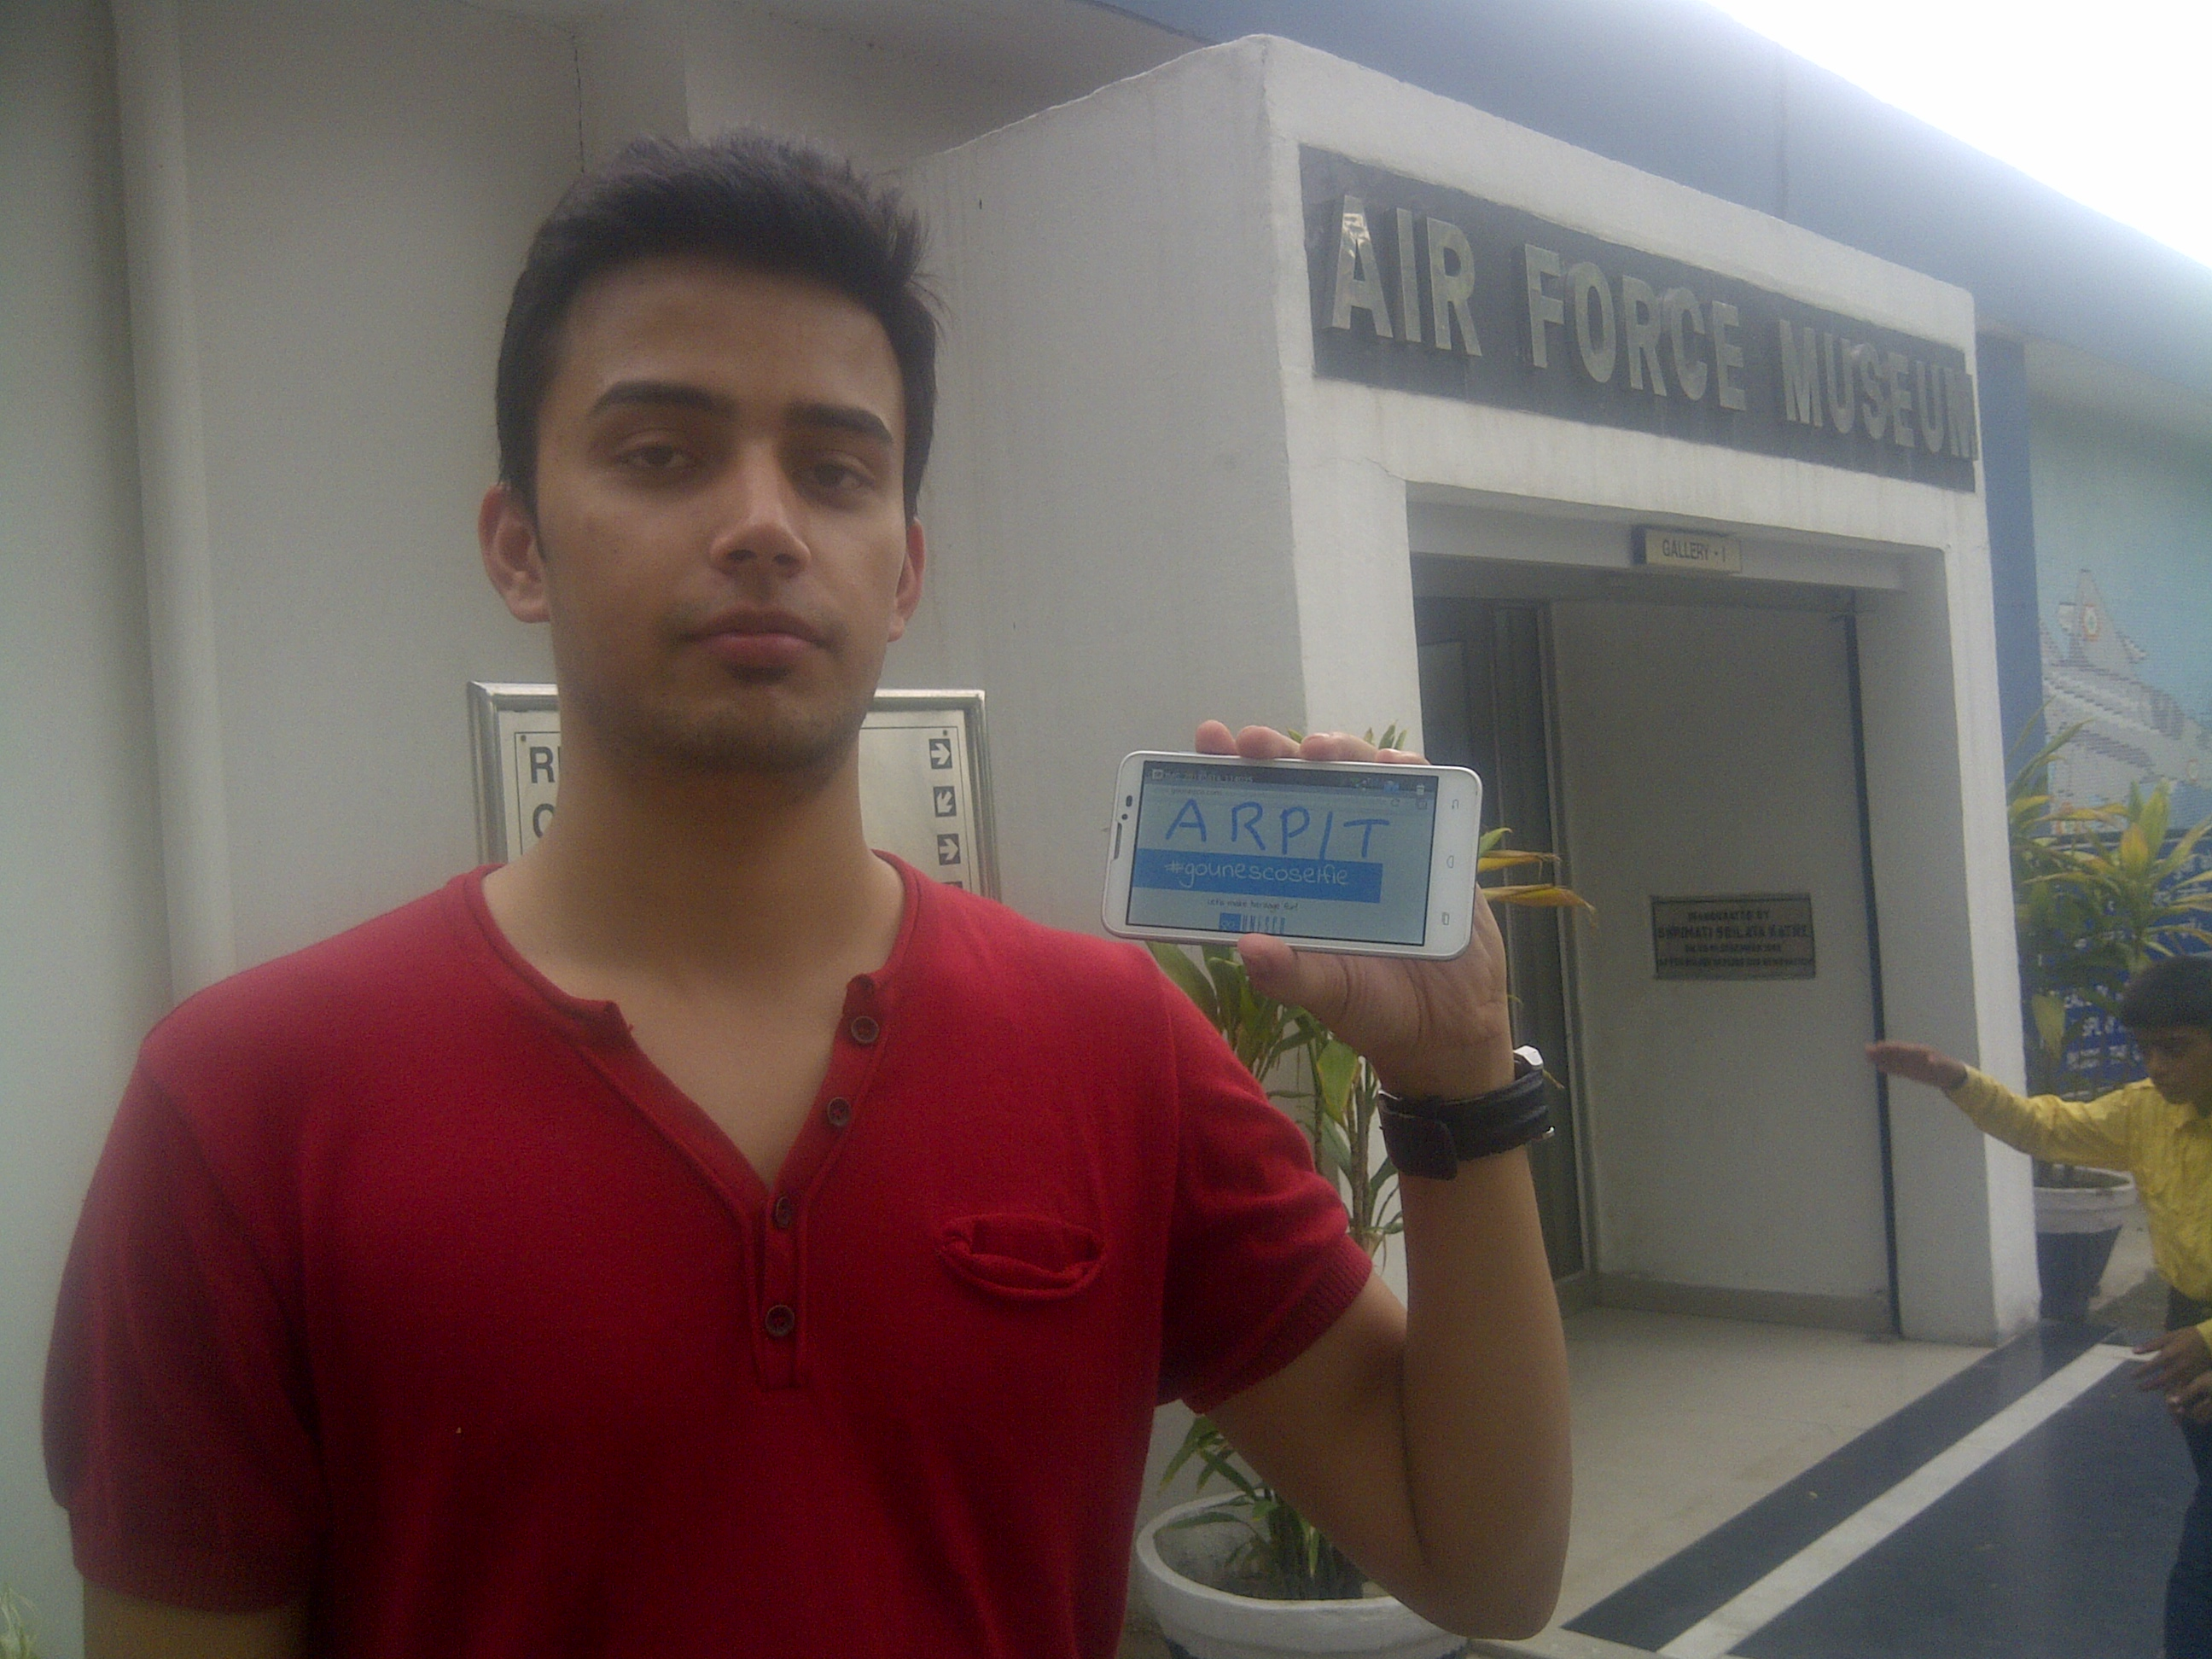 The Indian Air Force Museum, Palam Arpit Singh